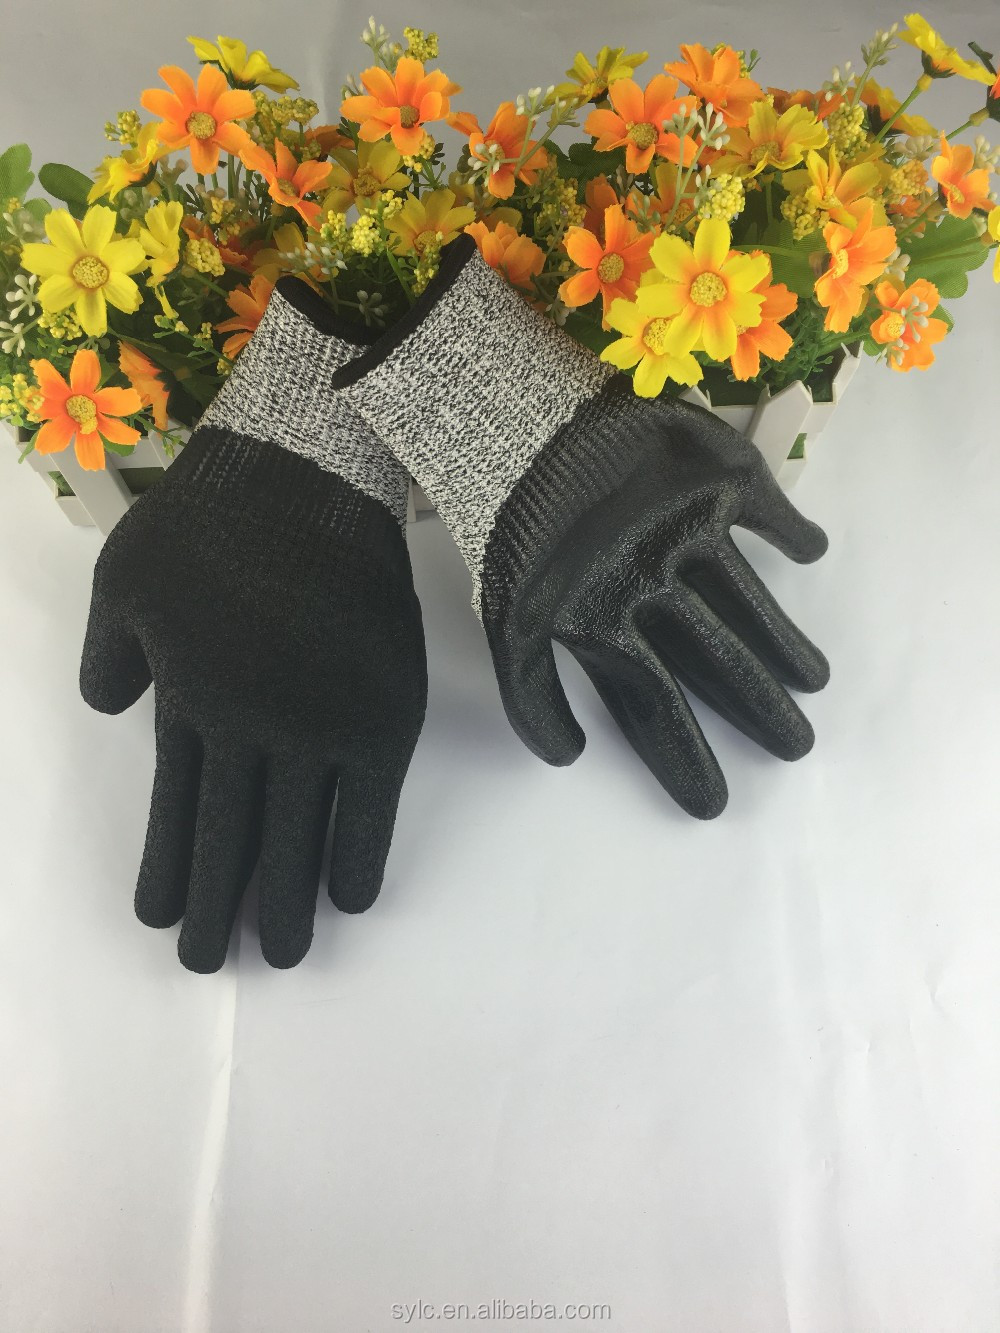 working safety glass handling cut resistant gloves level 5